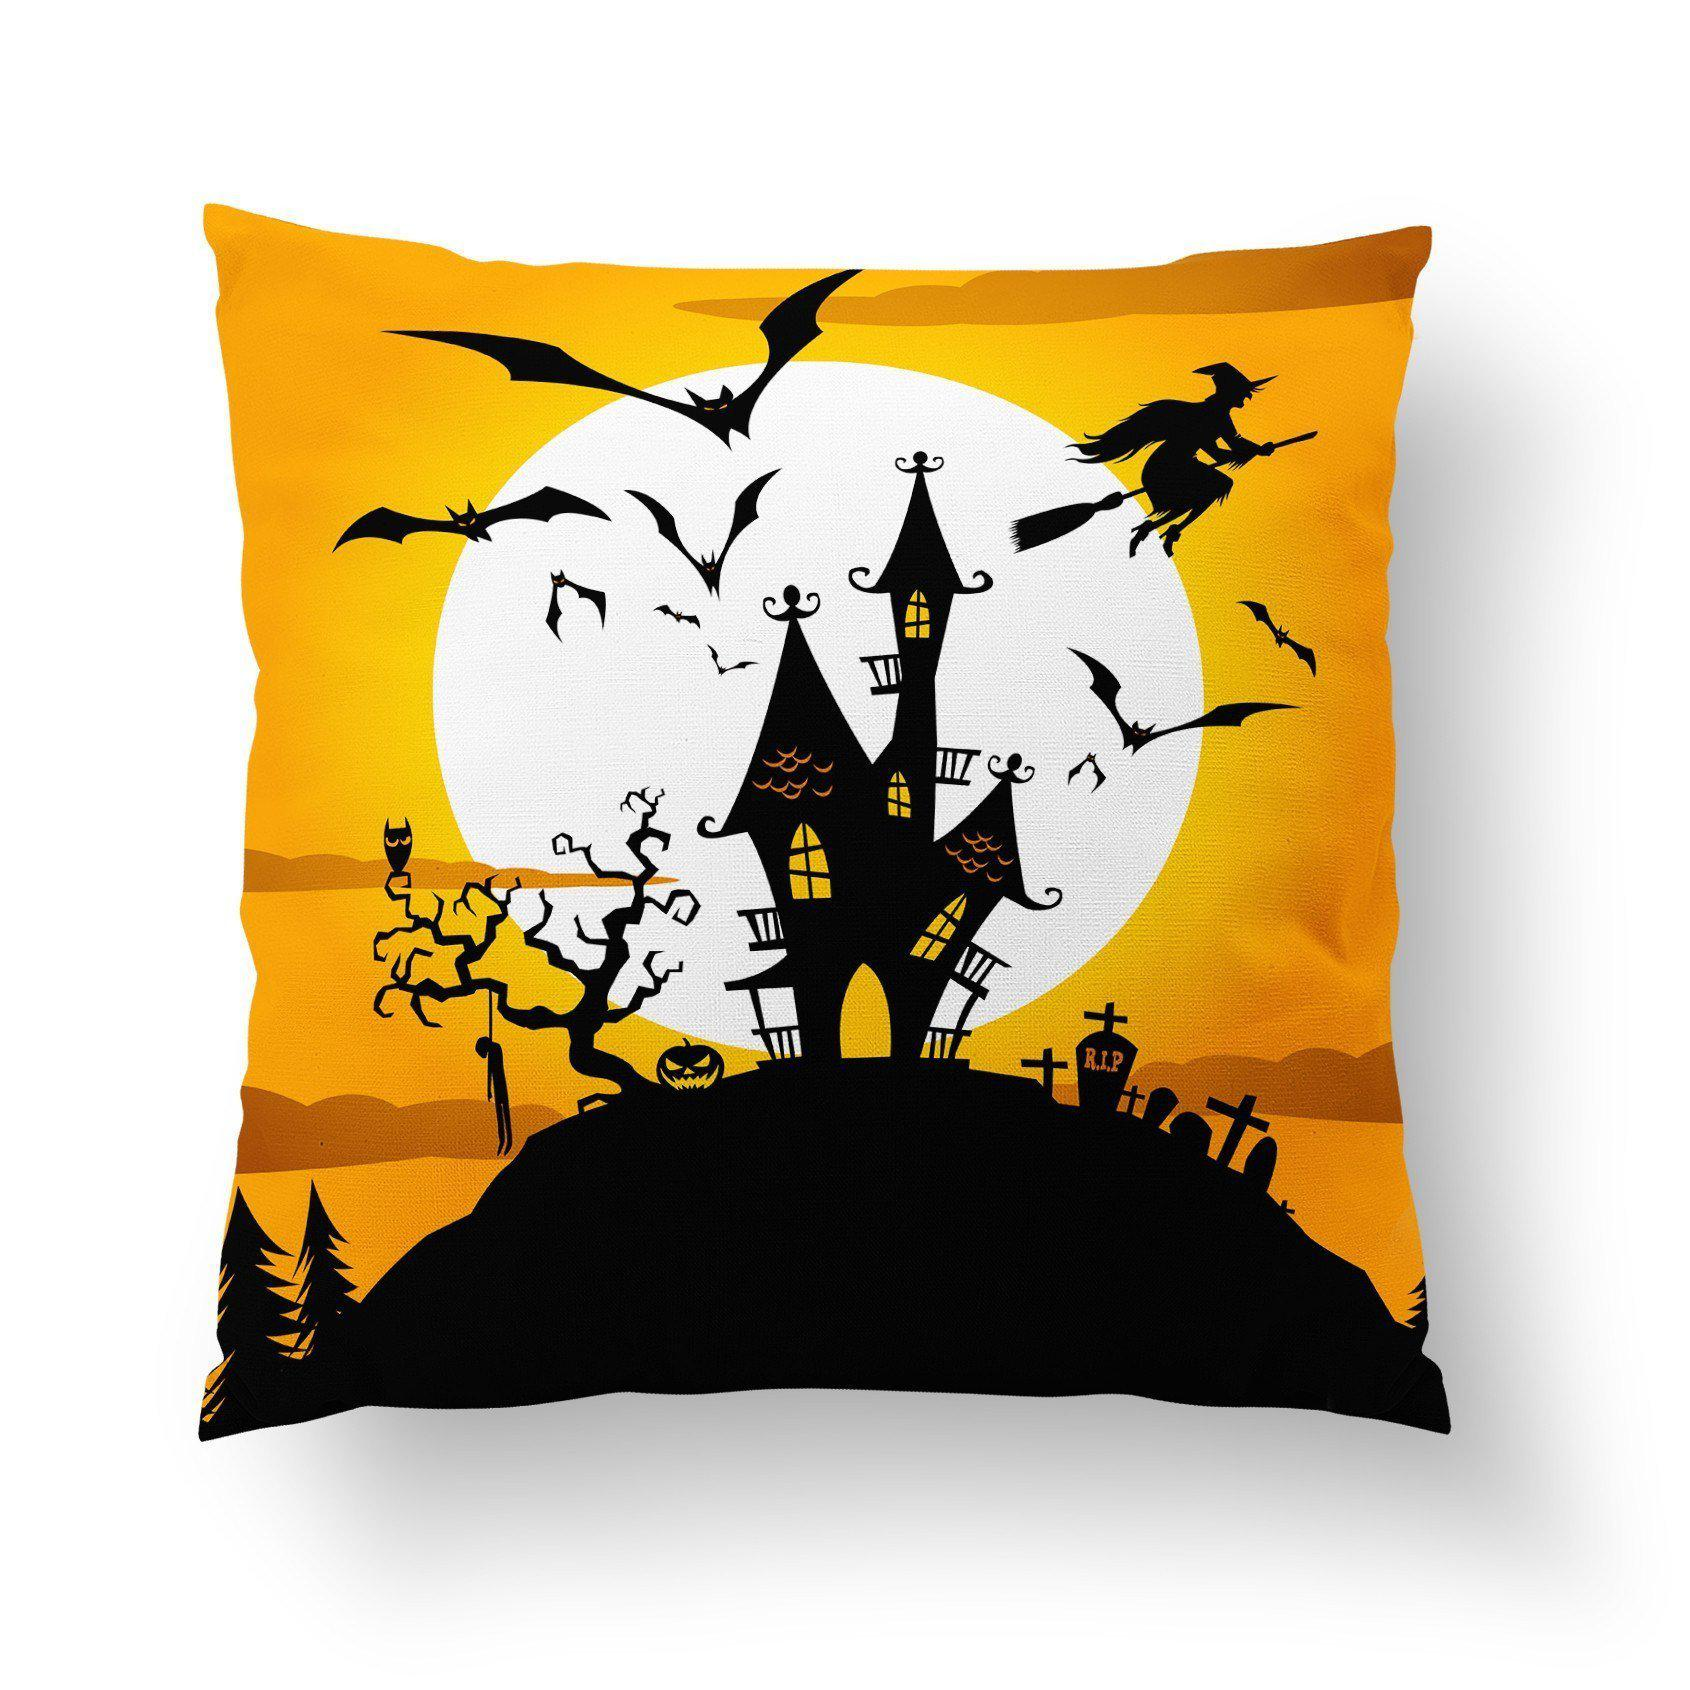 Orange Halloween Pillow Cover - Pillow Covers - W.FRANCIS